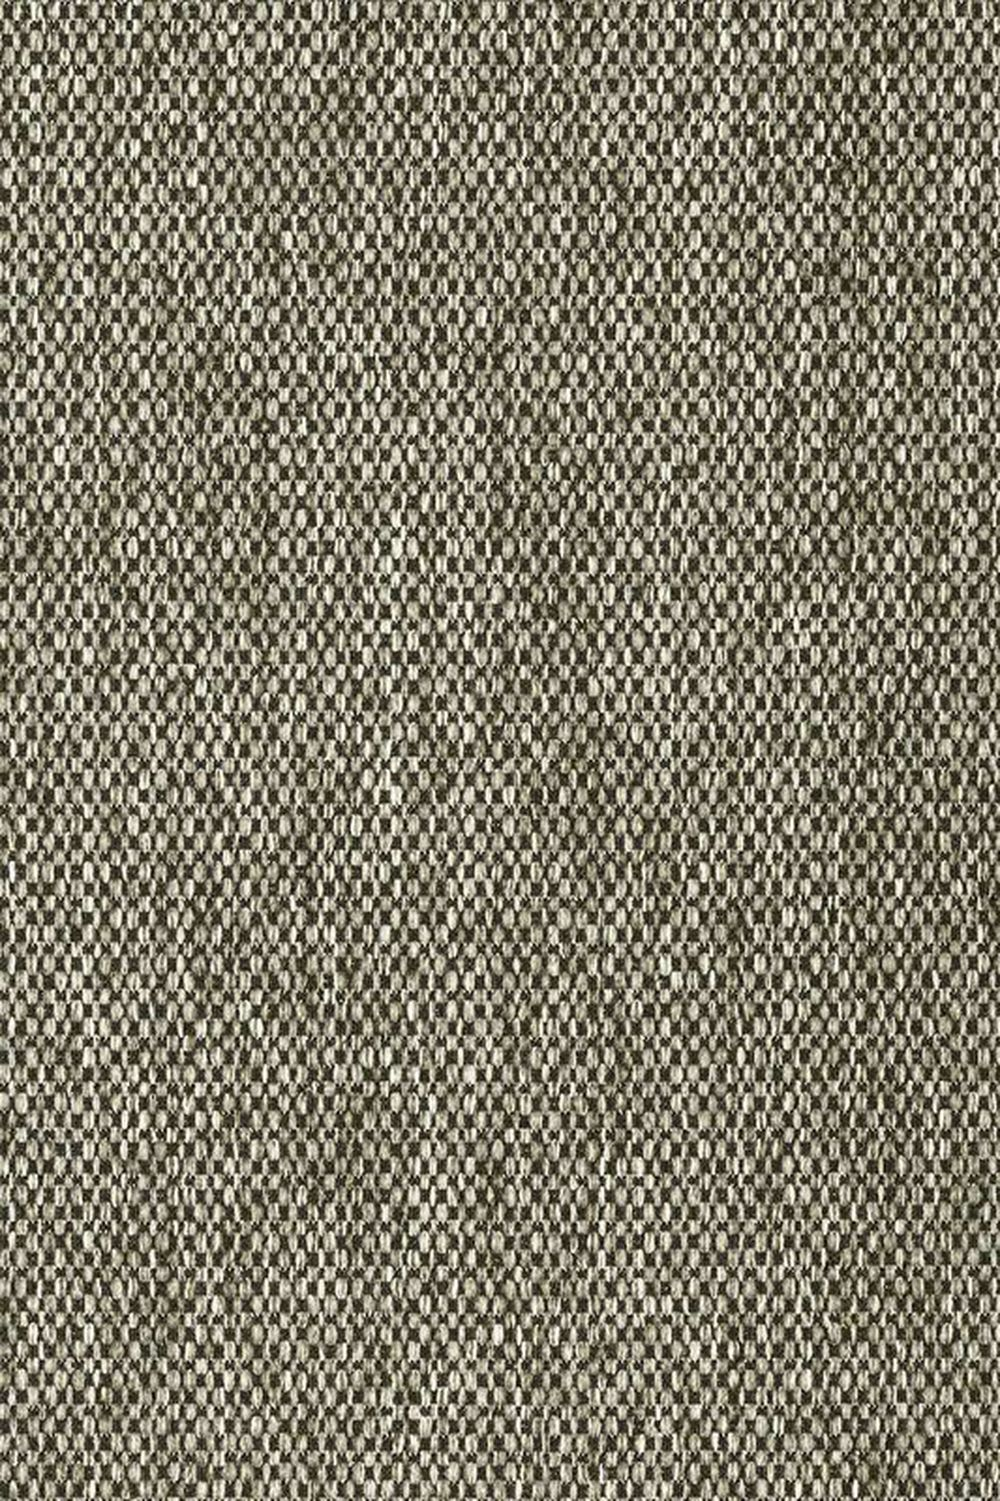 Photo of the fabric Reef Terrazzo swatch by Mokum. Use for Upholstery Heavy Duty, Accessory. Style of Plain, Texture